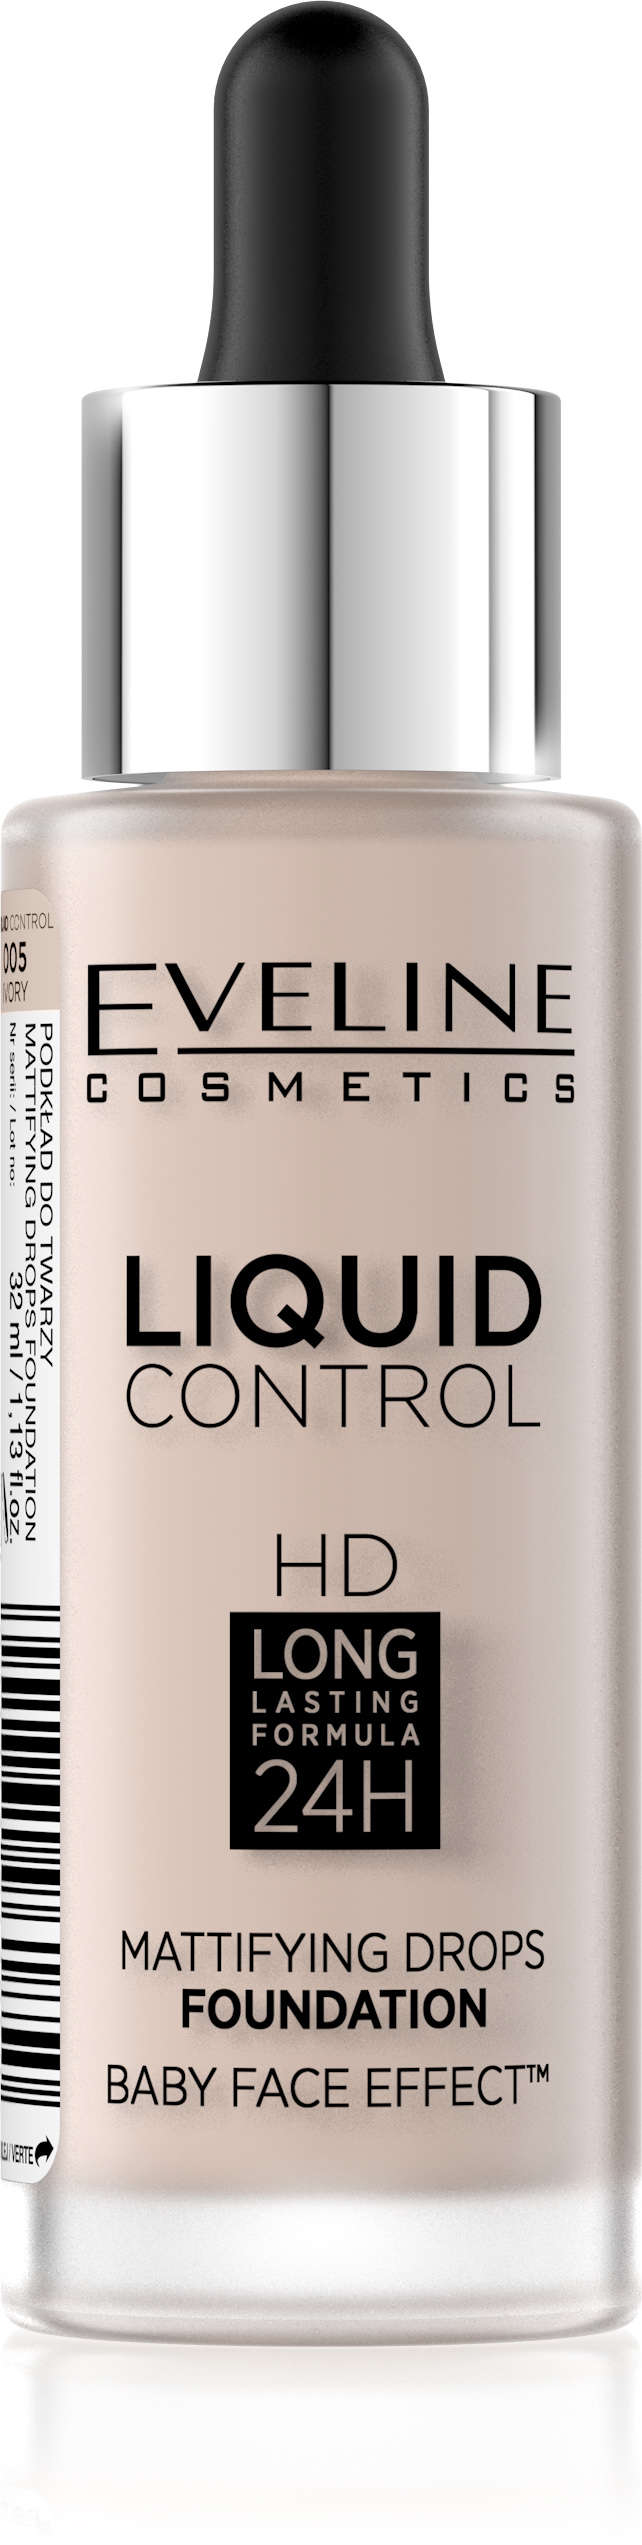 EVELINE Liquid Control HD 24h podklad make-up